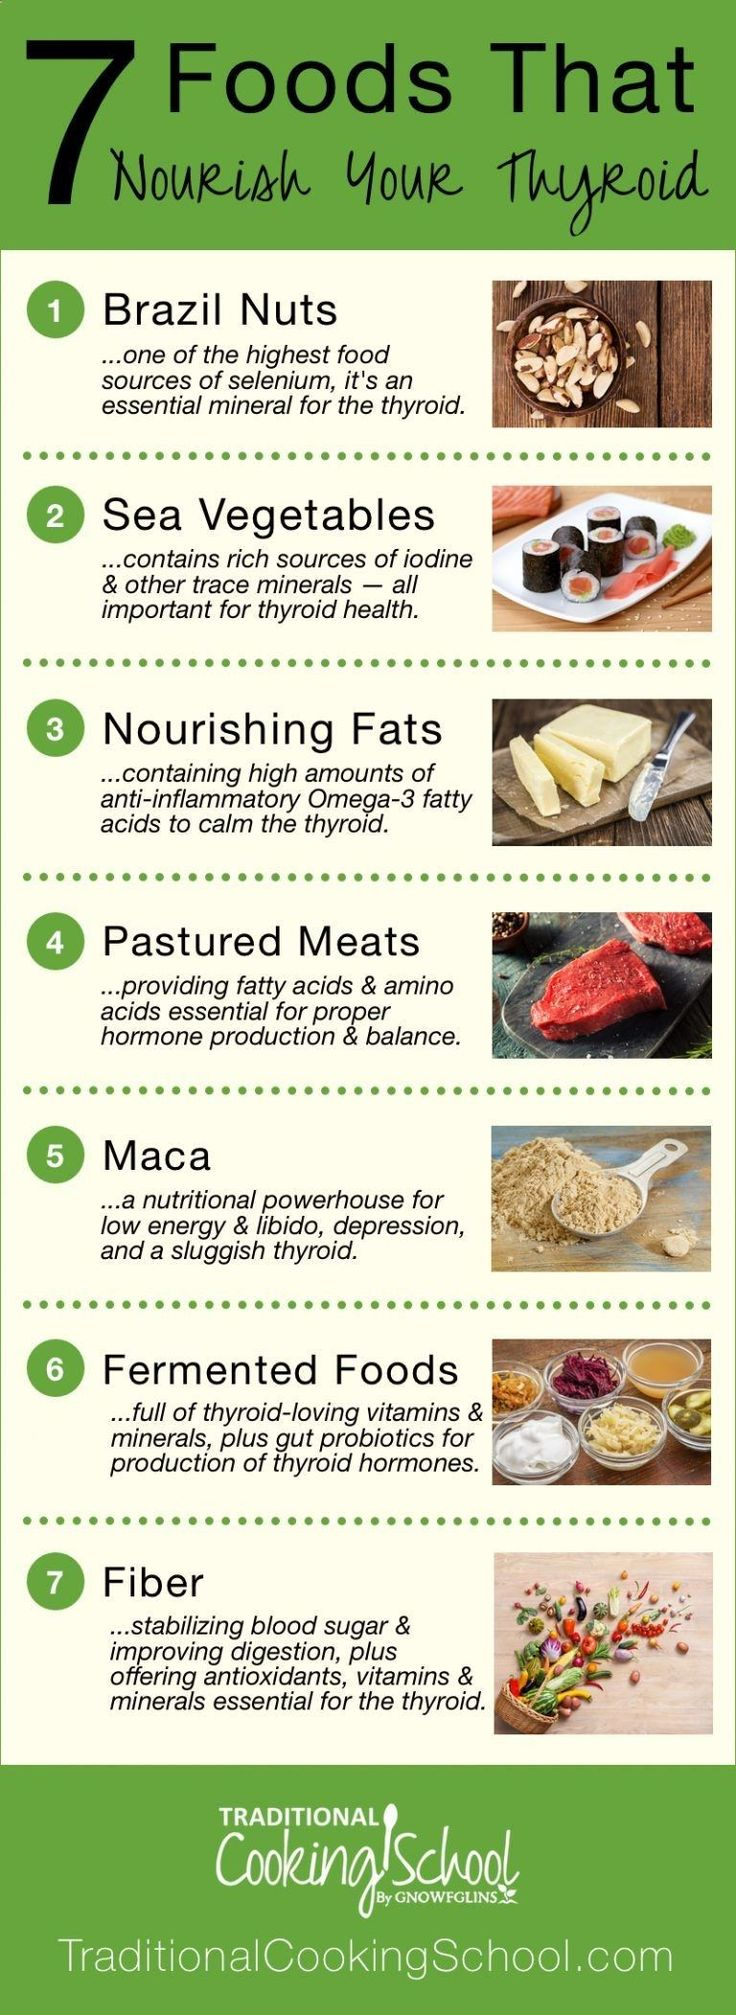 7 Foods That Nourish Your Thyroid | Gaining weight? Feeling depressed or sluggish? Is your hair falling out? Have you experienced strange or irregular heartbeats? Can't sleep? All roads might lead to your thyroid. Thyroid problems can be genetic, and though you can't control your genes, you can control your diet and lifestyle. Nourish your thyroid with these 7 foods! | TraditionalCookin... #Dietandyourthyroid